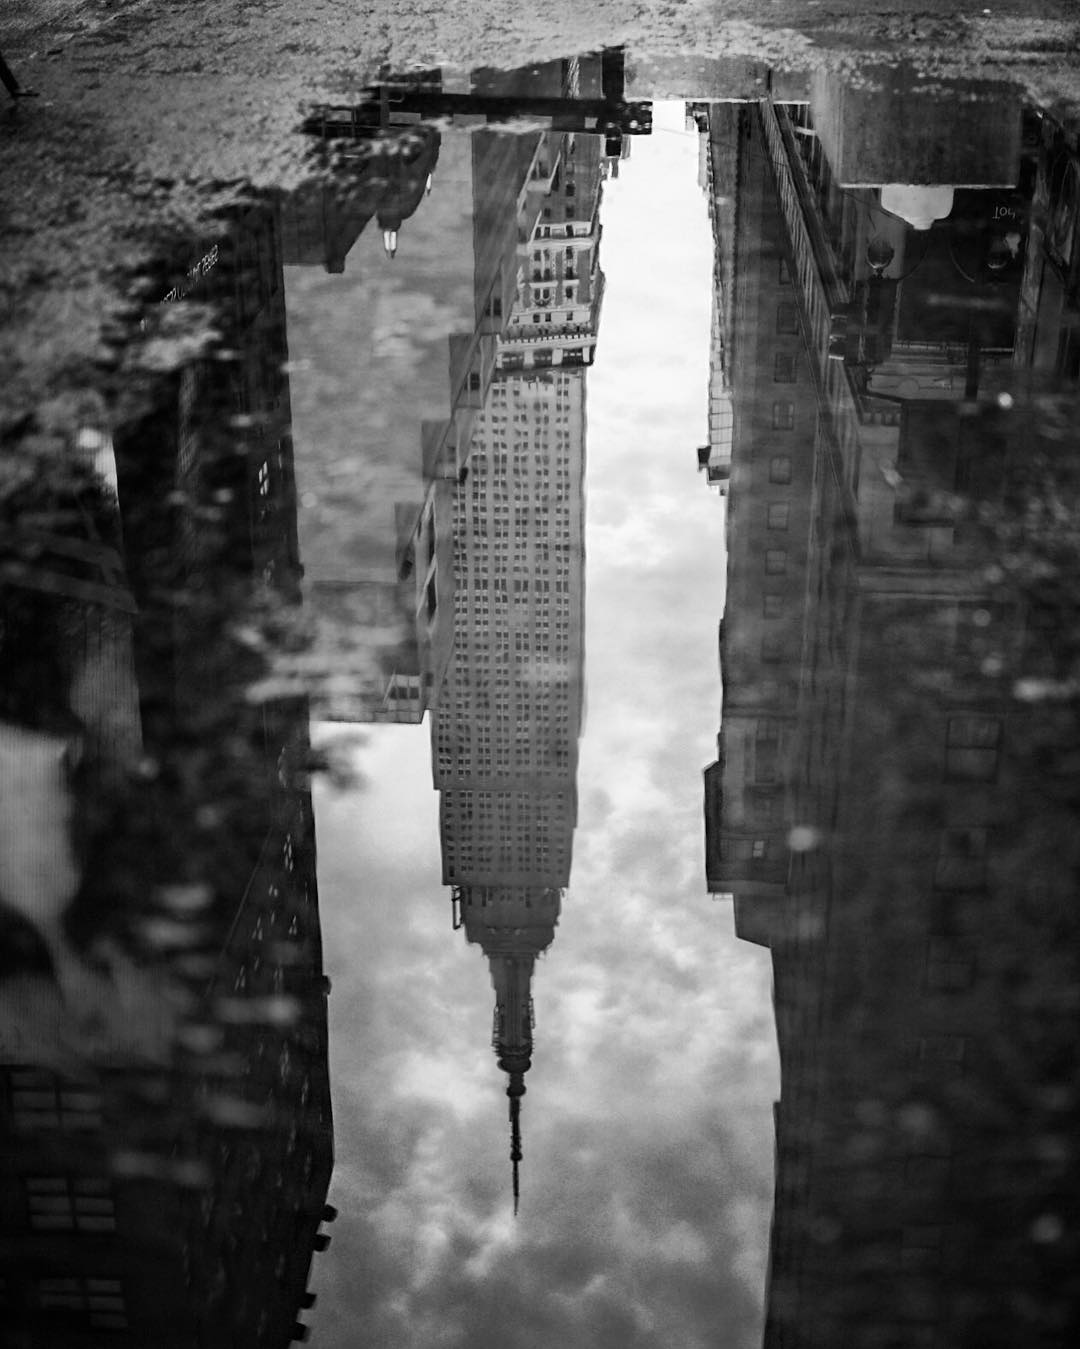 puddle-empire-state-building.jpg